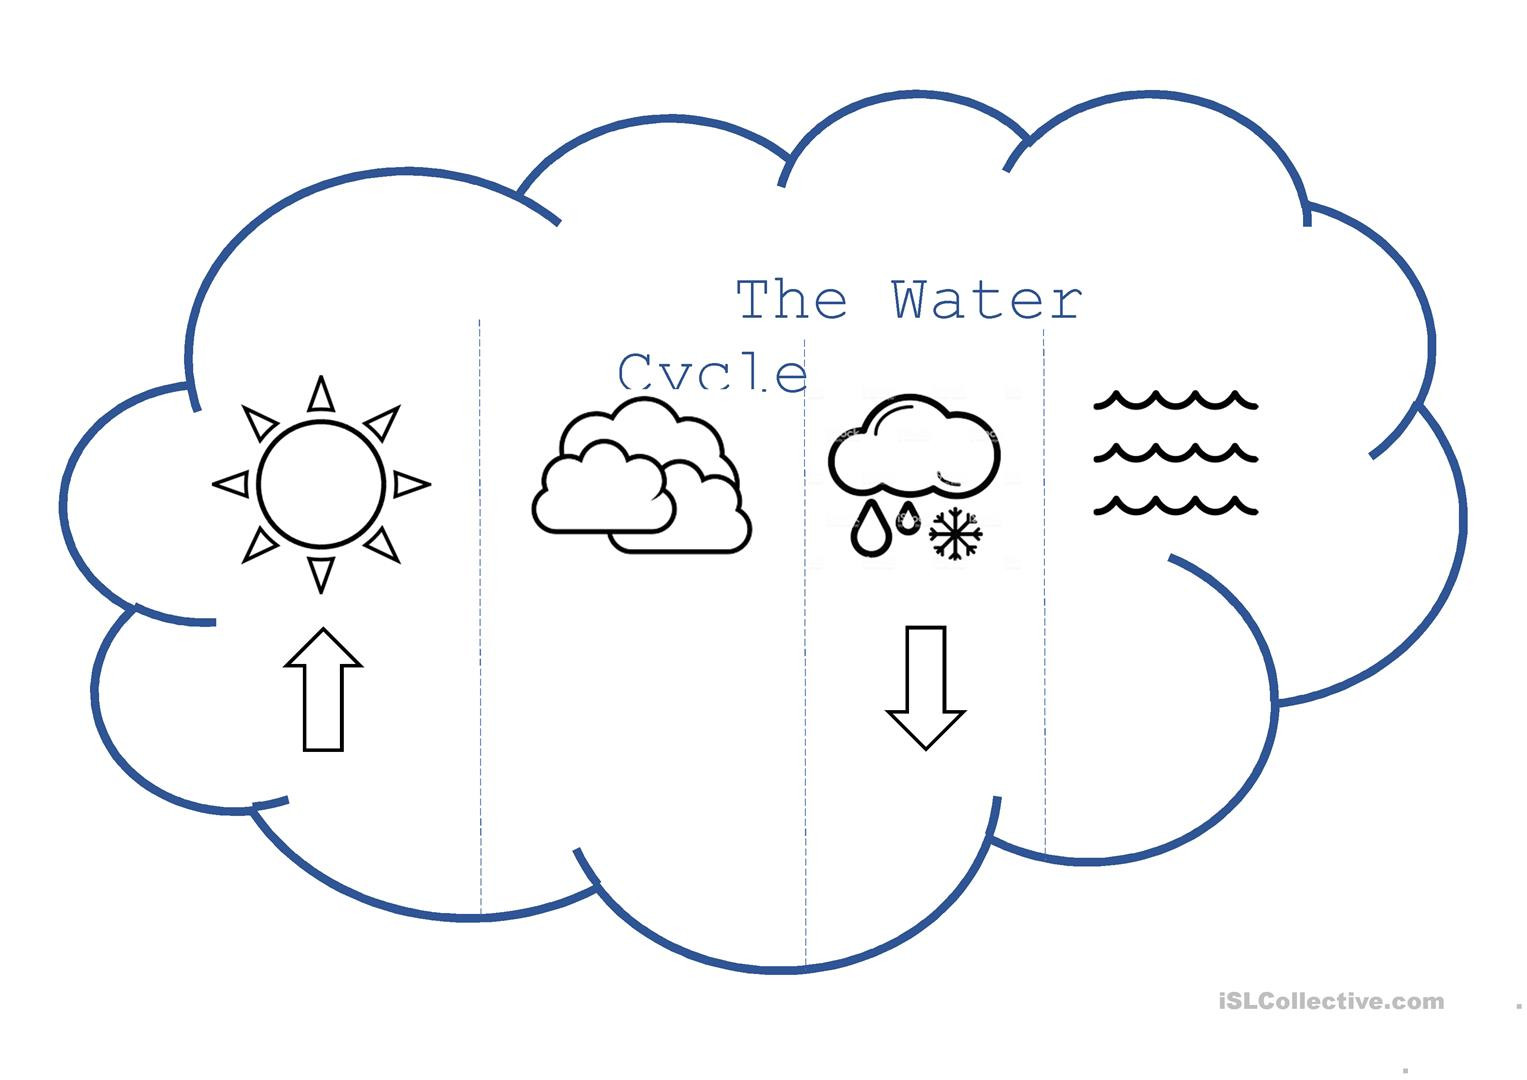 Water Cycle Worksheets 2nd Grade Water Cycle Flip Book English Esl Worksheets for Distance